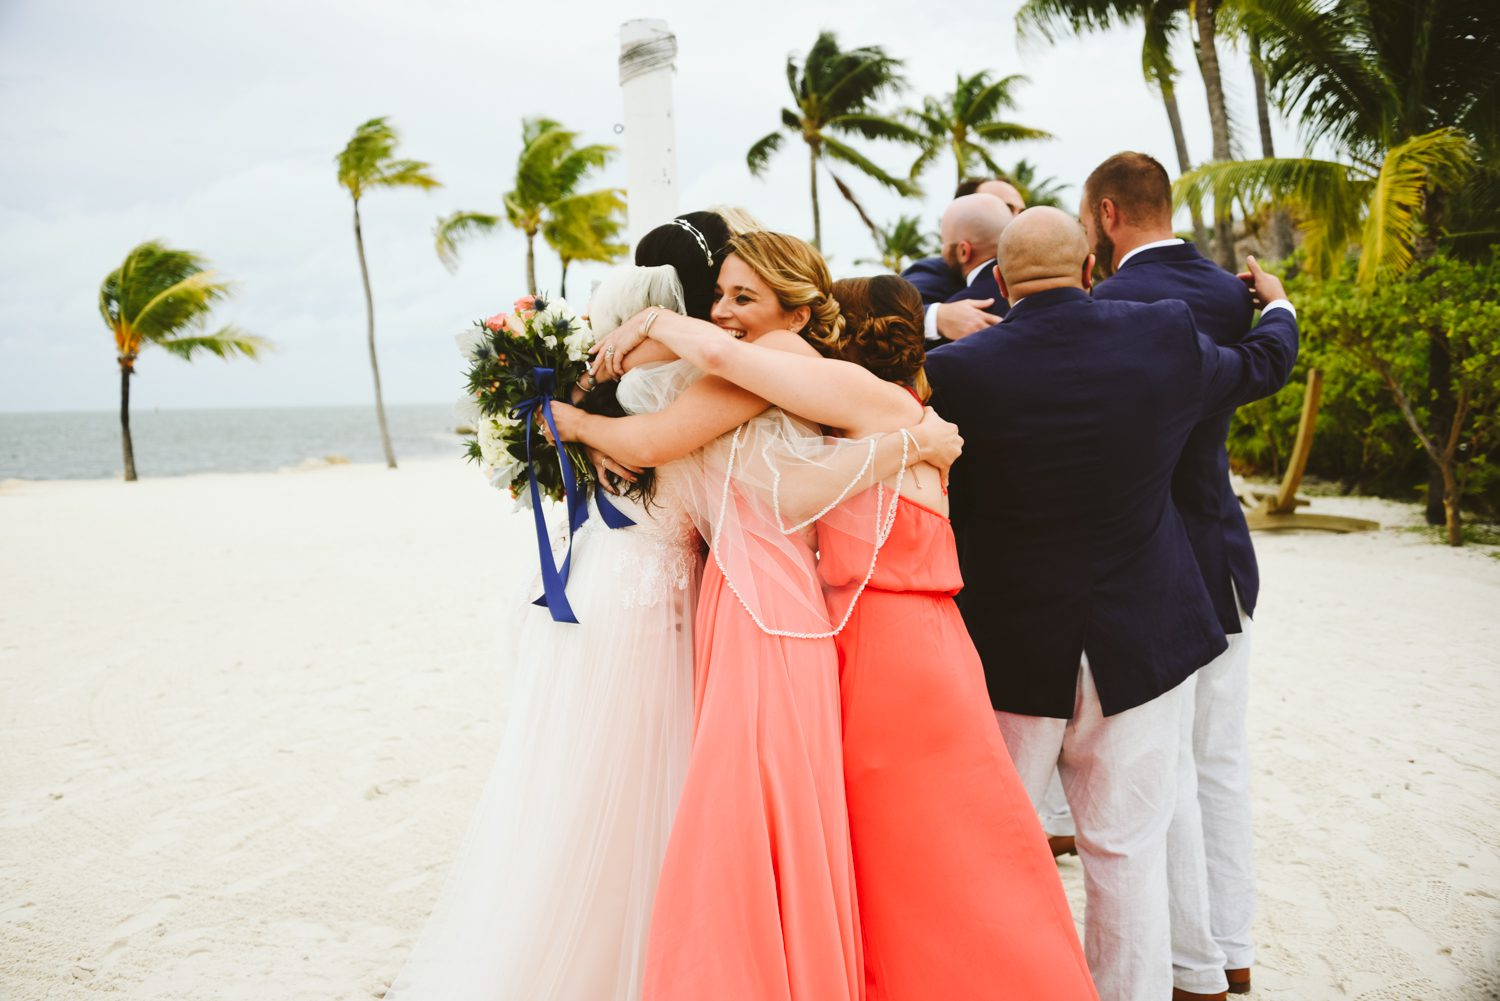 Postcard Inn at Holiday Isle Wedding Islamorada Wedding Photographer 297 - Postcard Inn at Holiday Isle - Florida Keys Wedding Photography - Olivia & Grant